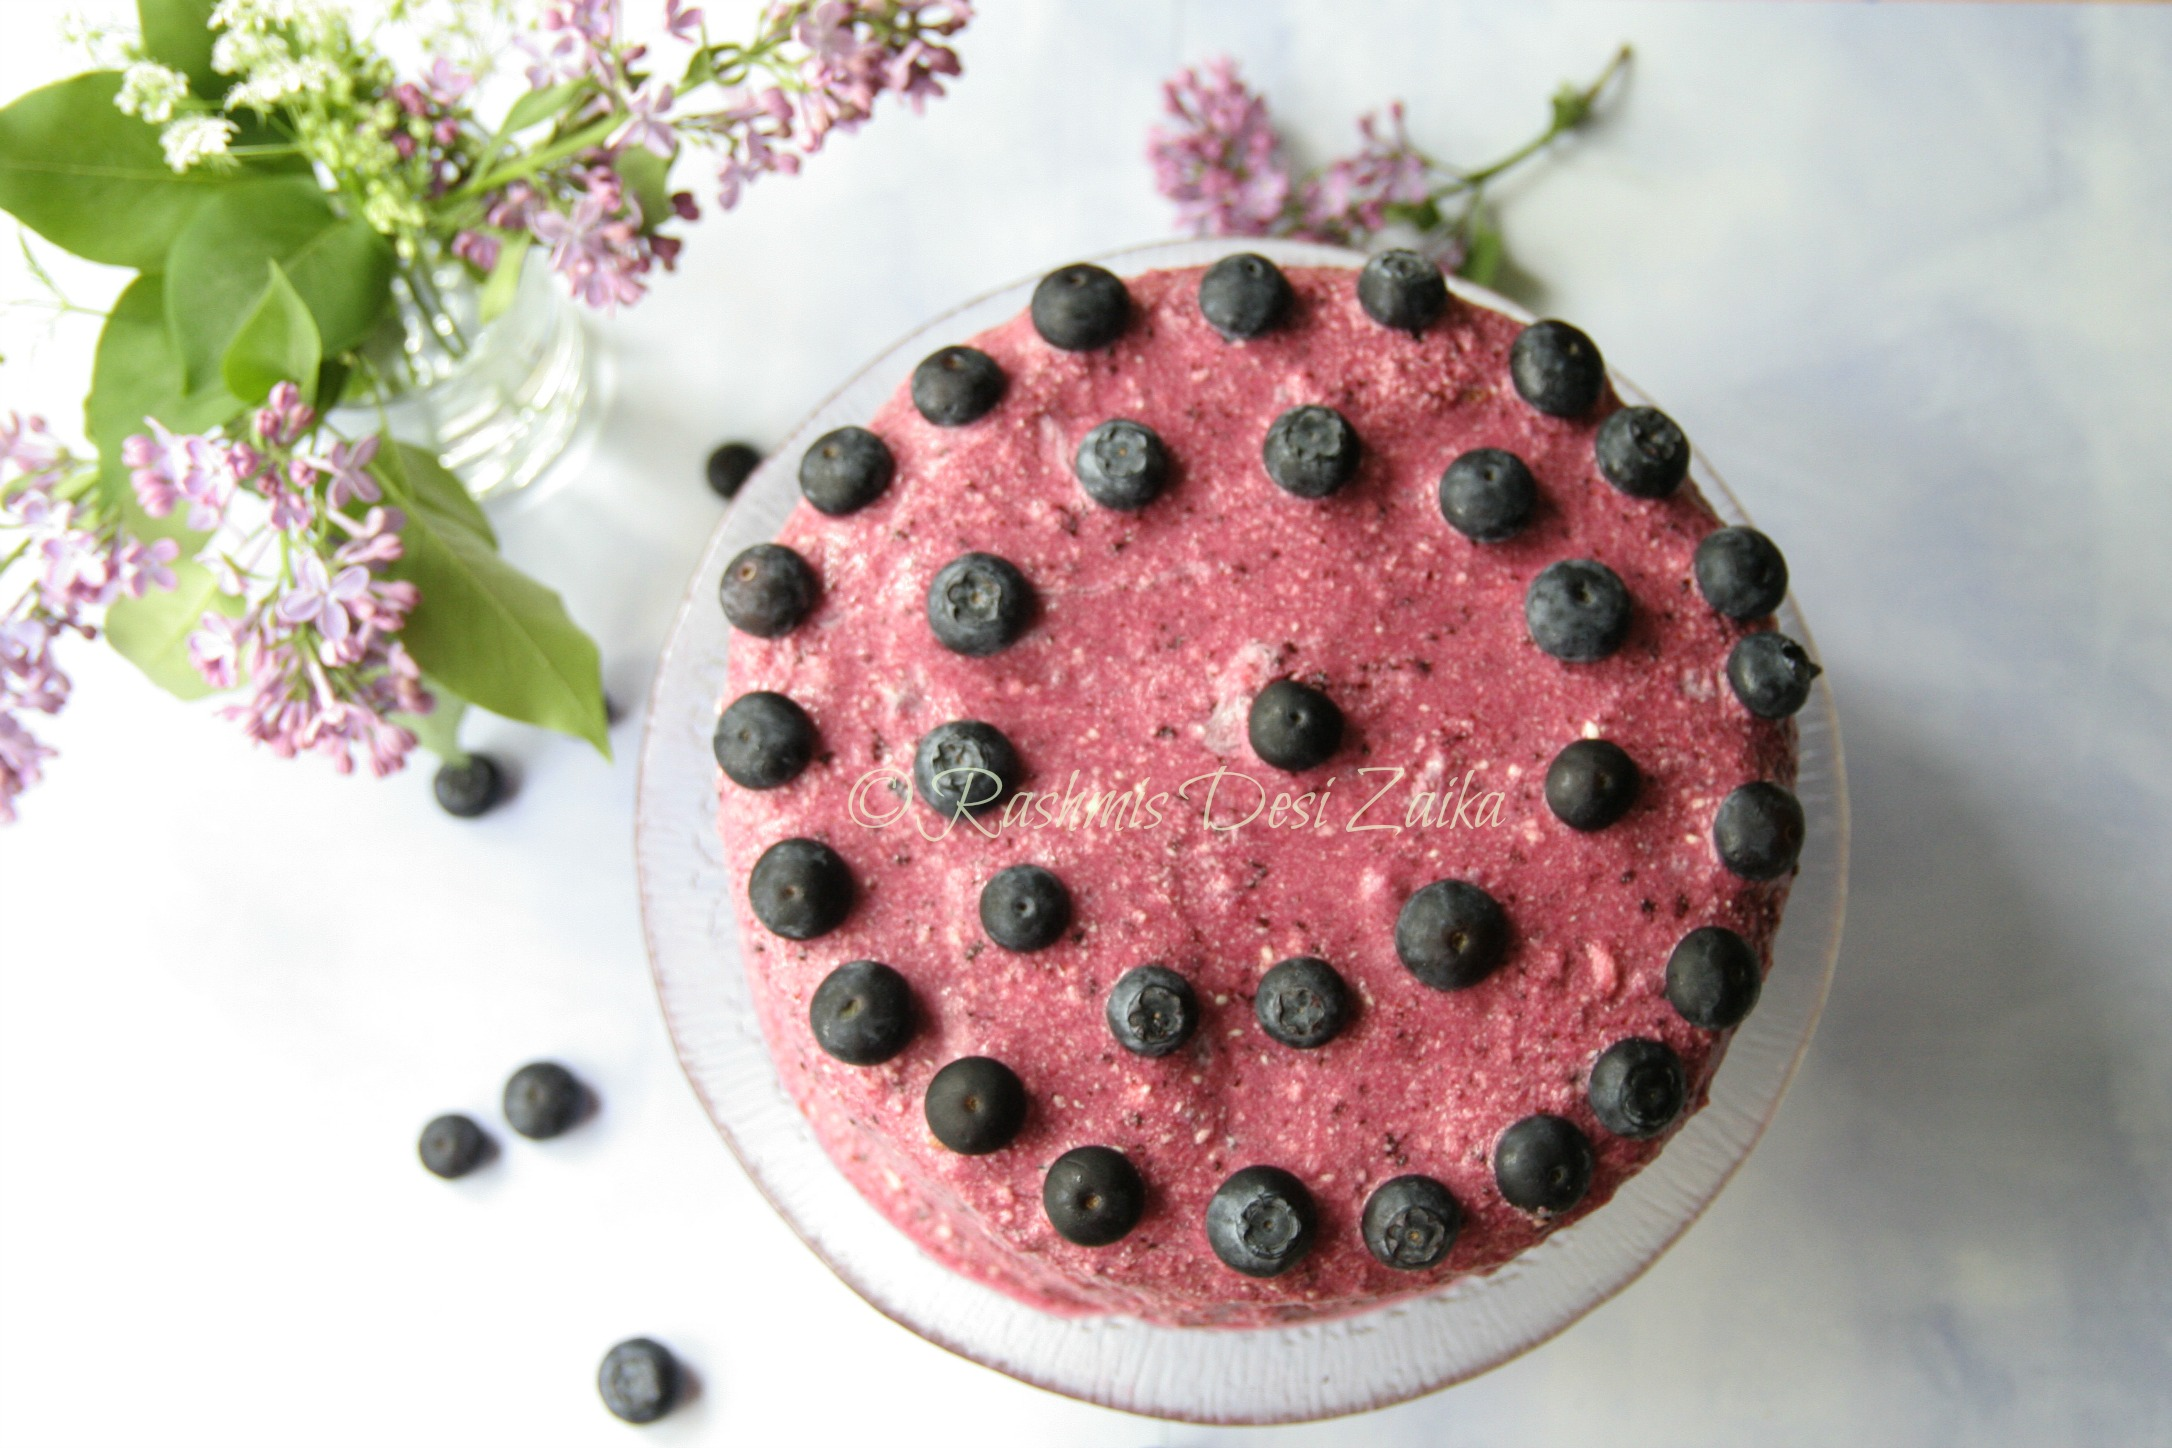 Lemon Poppy Seeds Layer Cake With Blueberry Compote